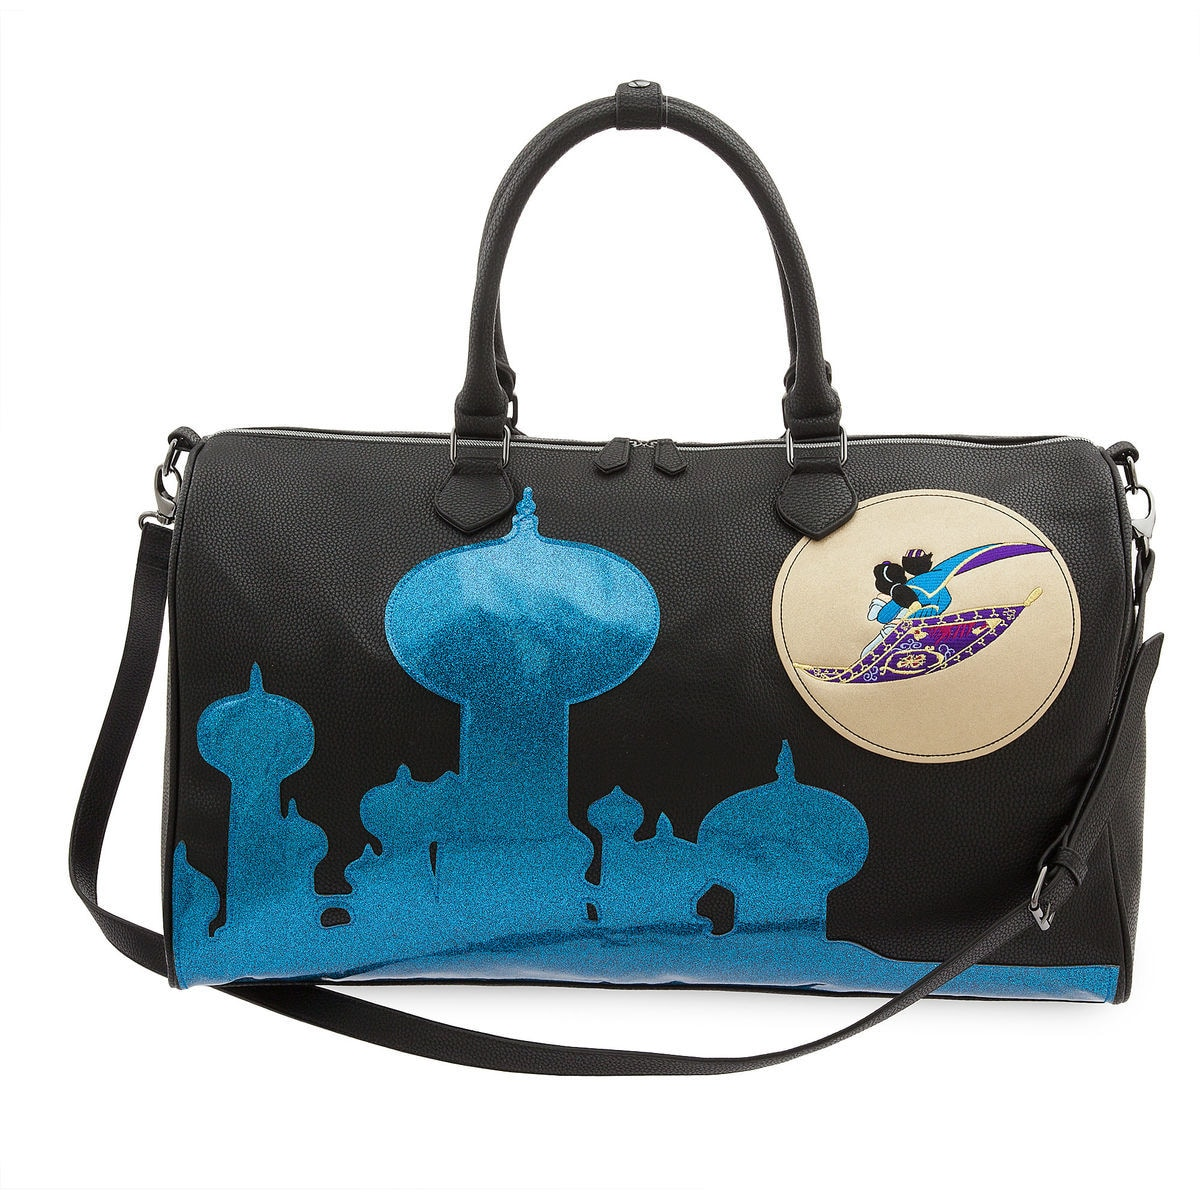 Product Image Of Jasmine And Aladdin Travel Bag For S By Danielle Nicole 1